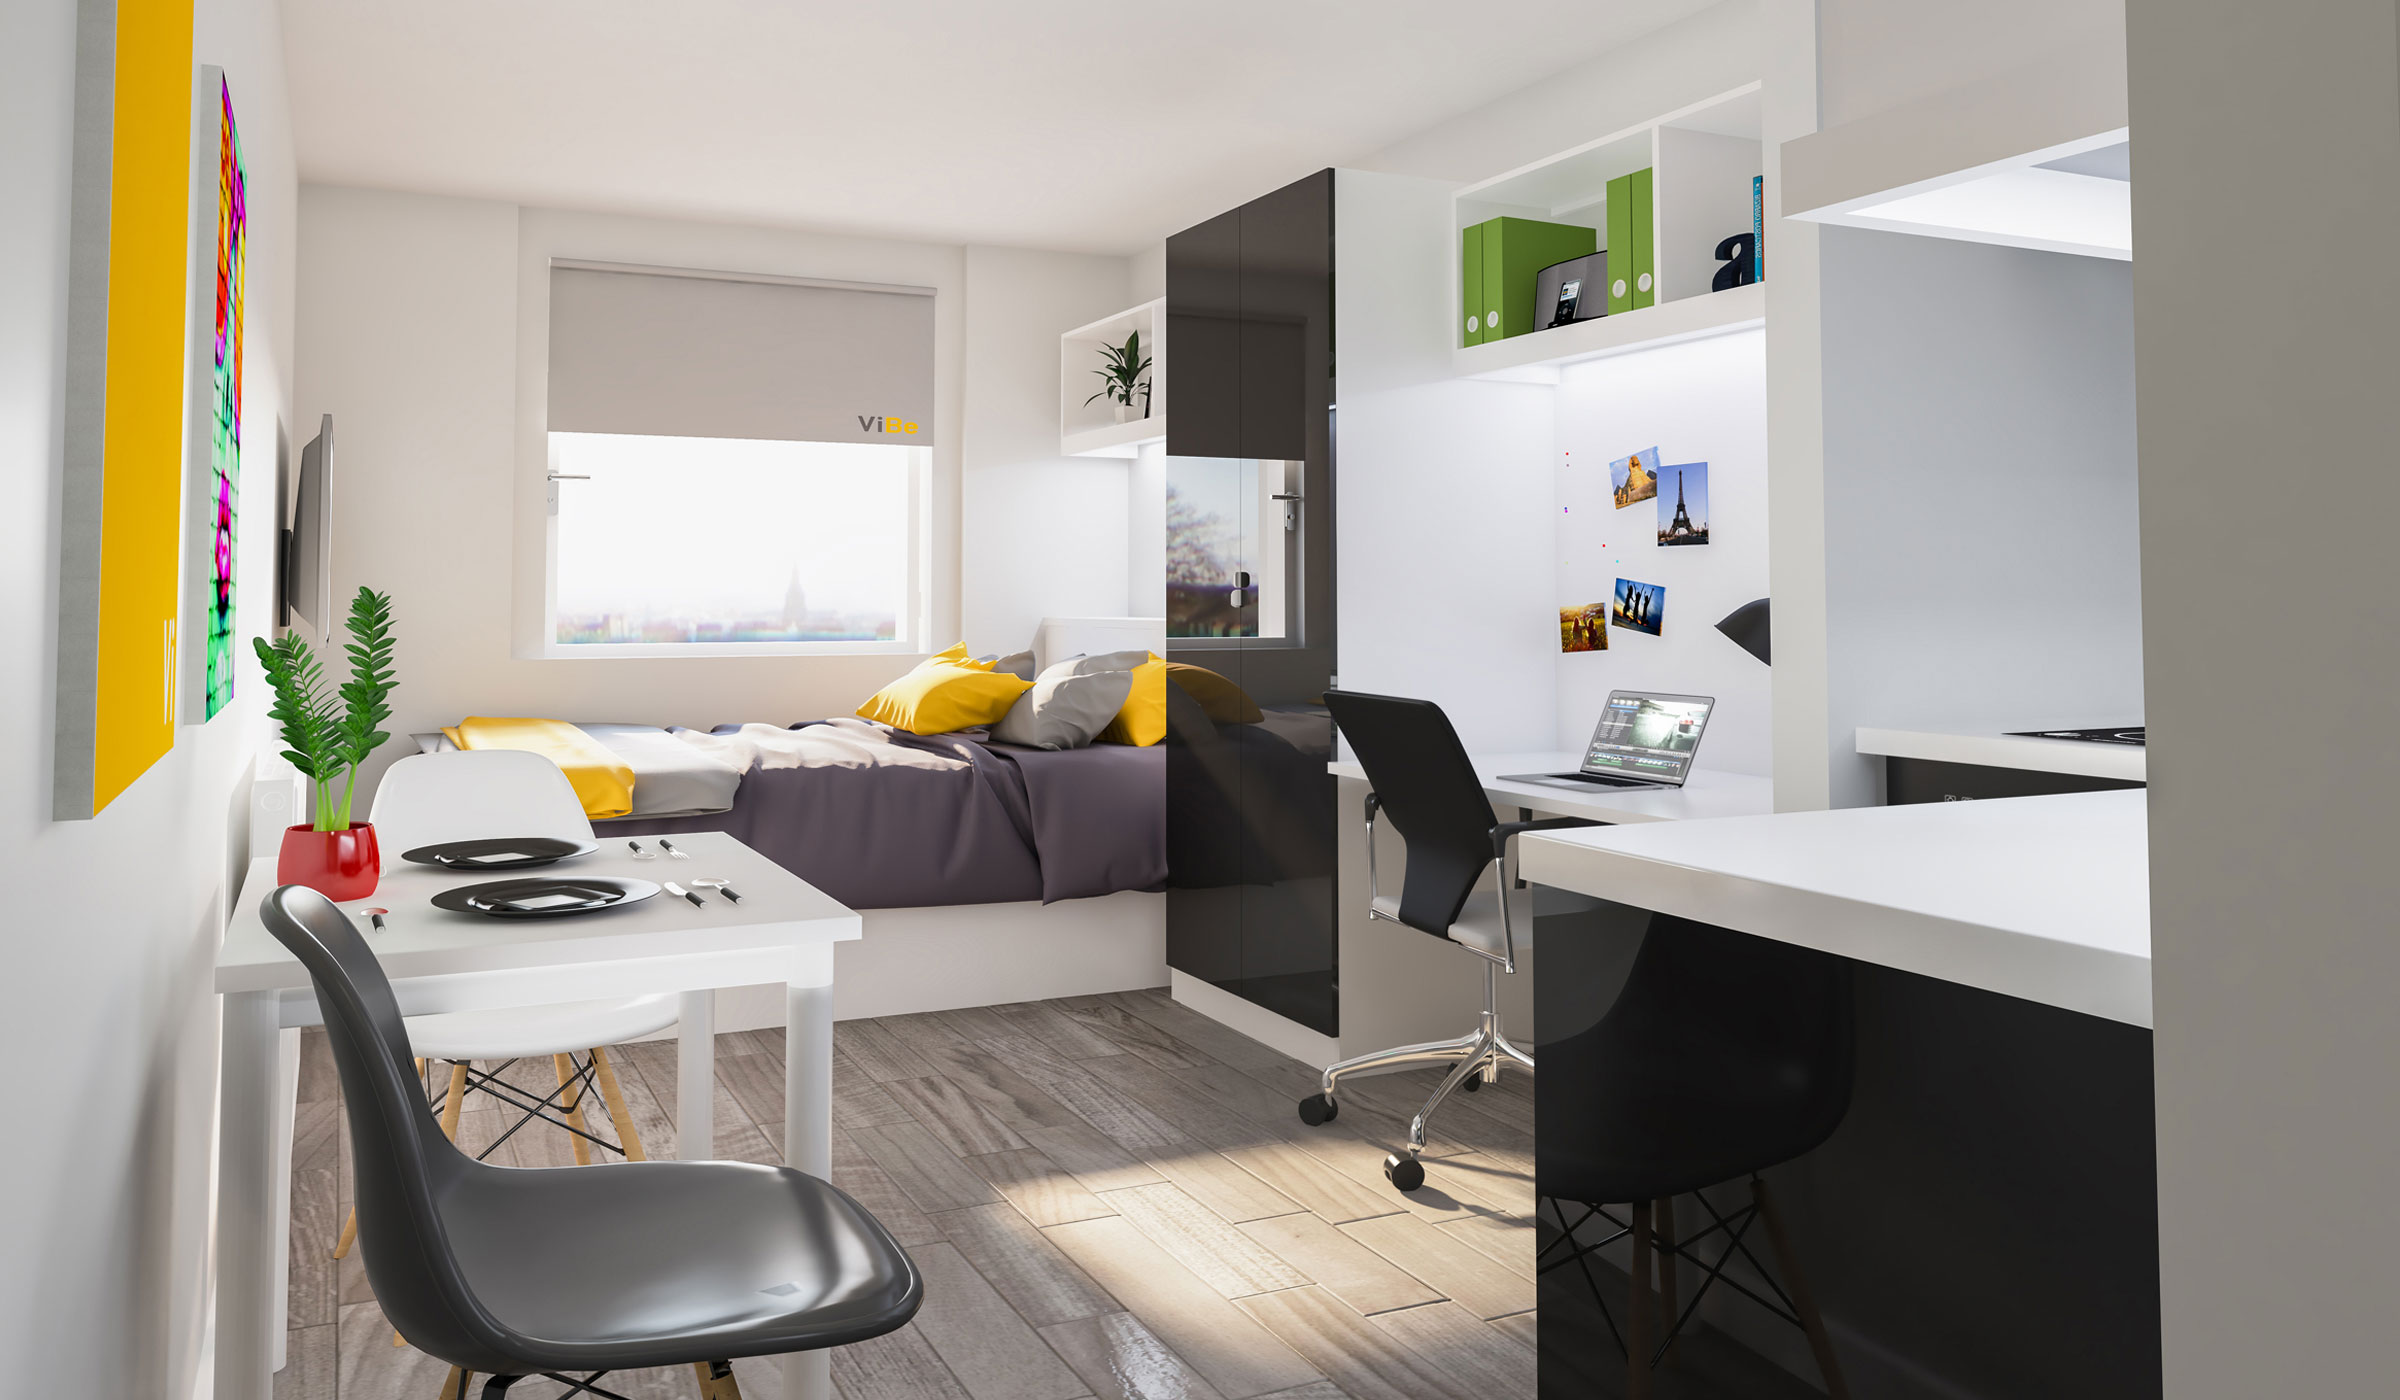 Vibe student accommodation standard studio